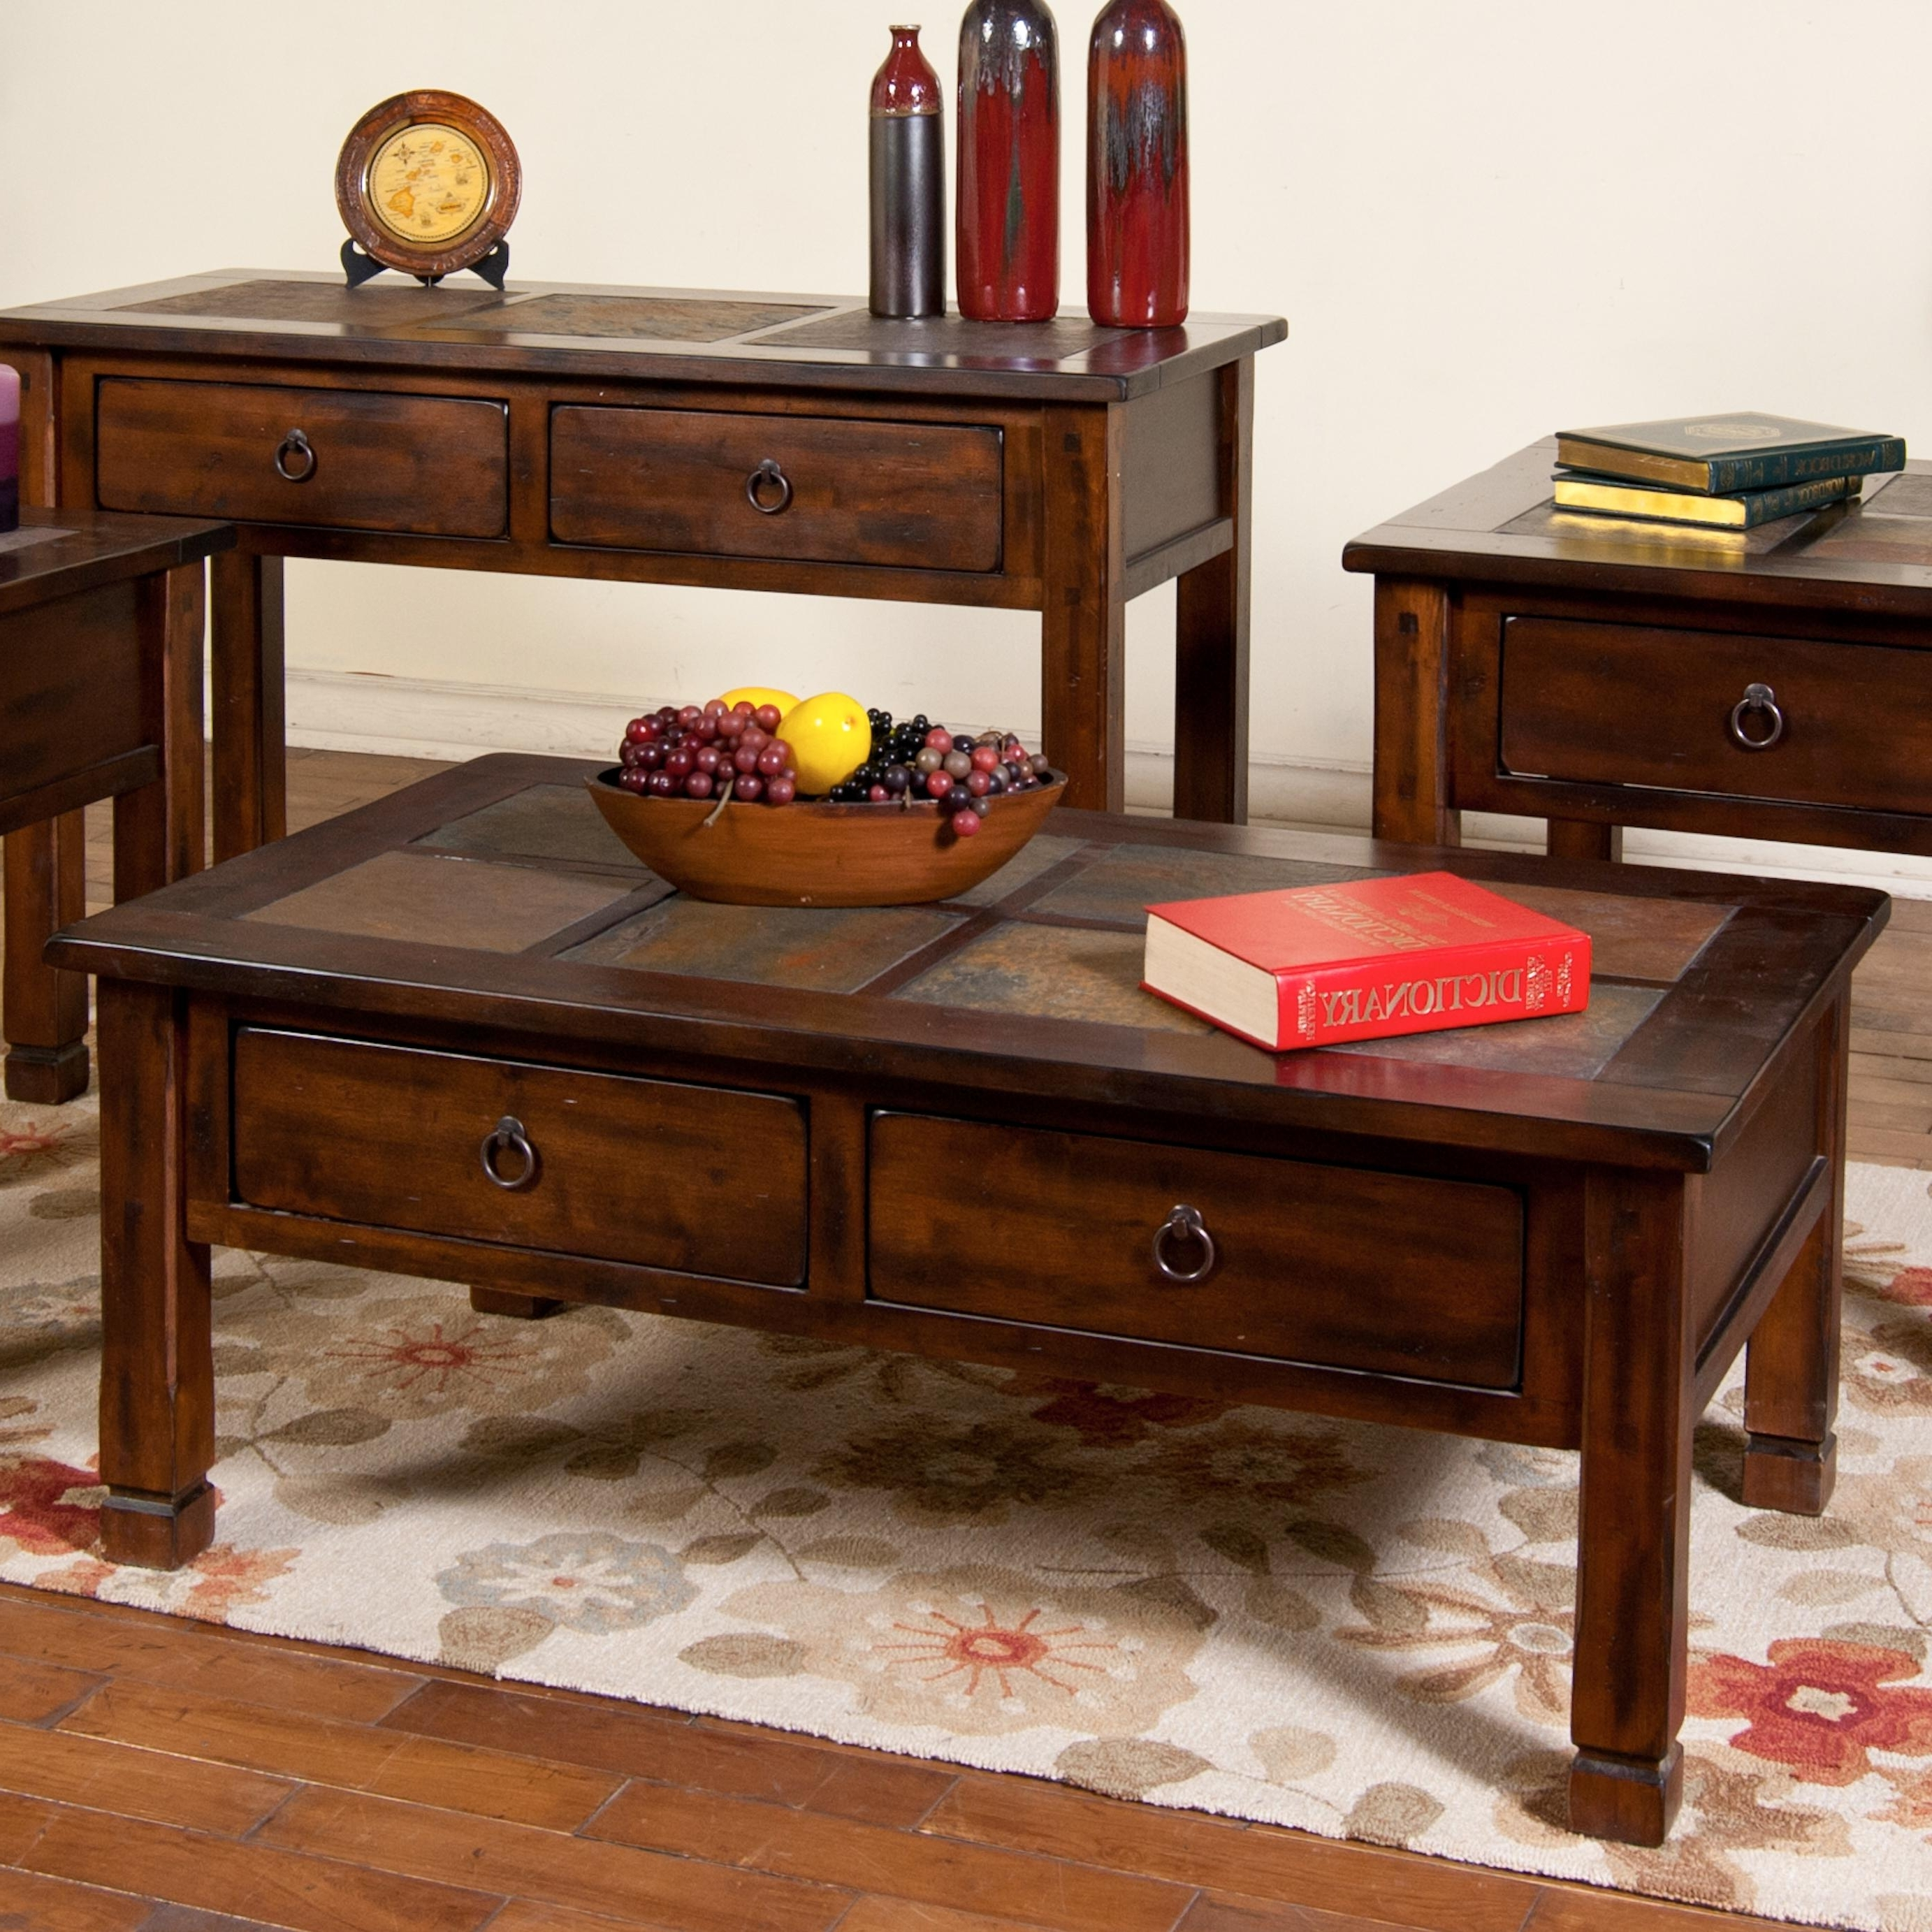 Sunny Designs Santa Fe 3143Dc Coffee Table With Slate Tiles And 2 With Famous Santa Fe Coffee Tables (View 15 of 20)